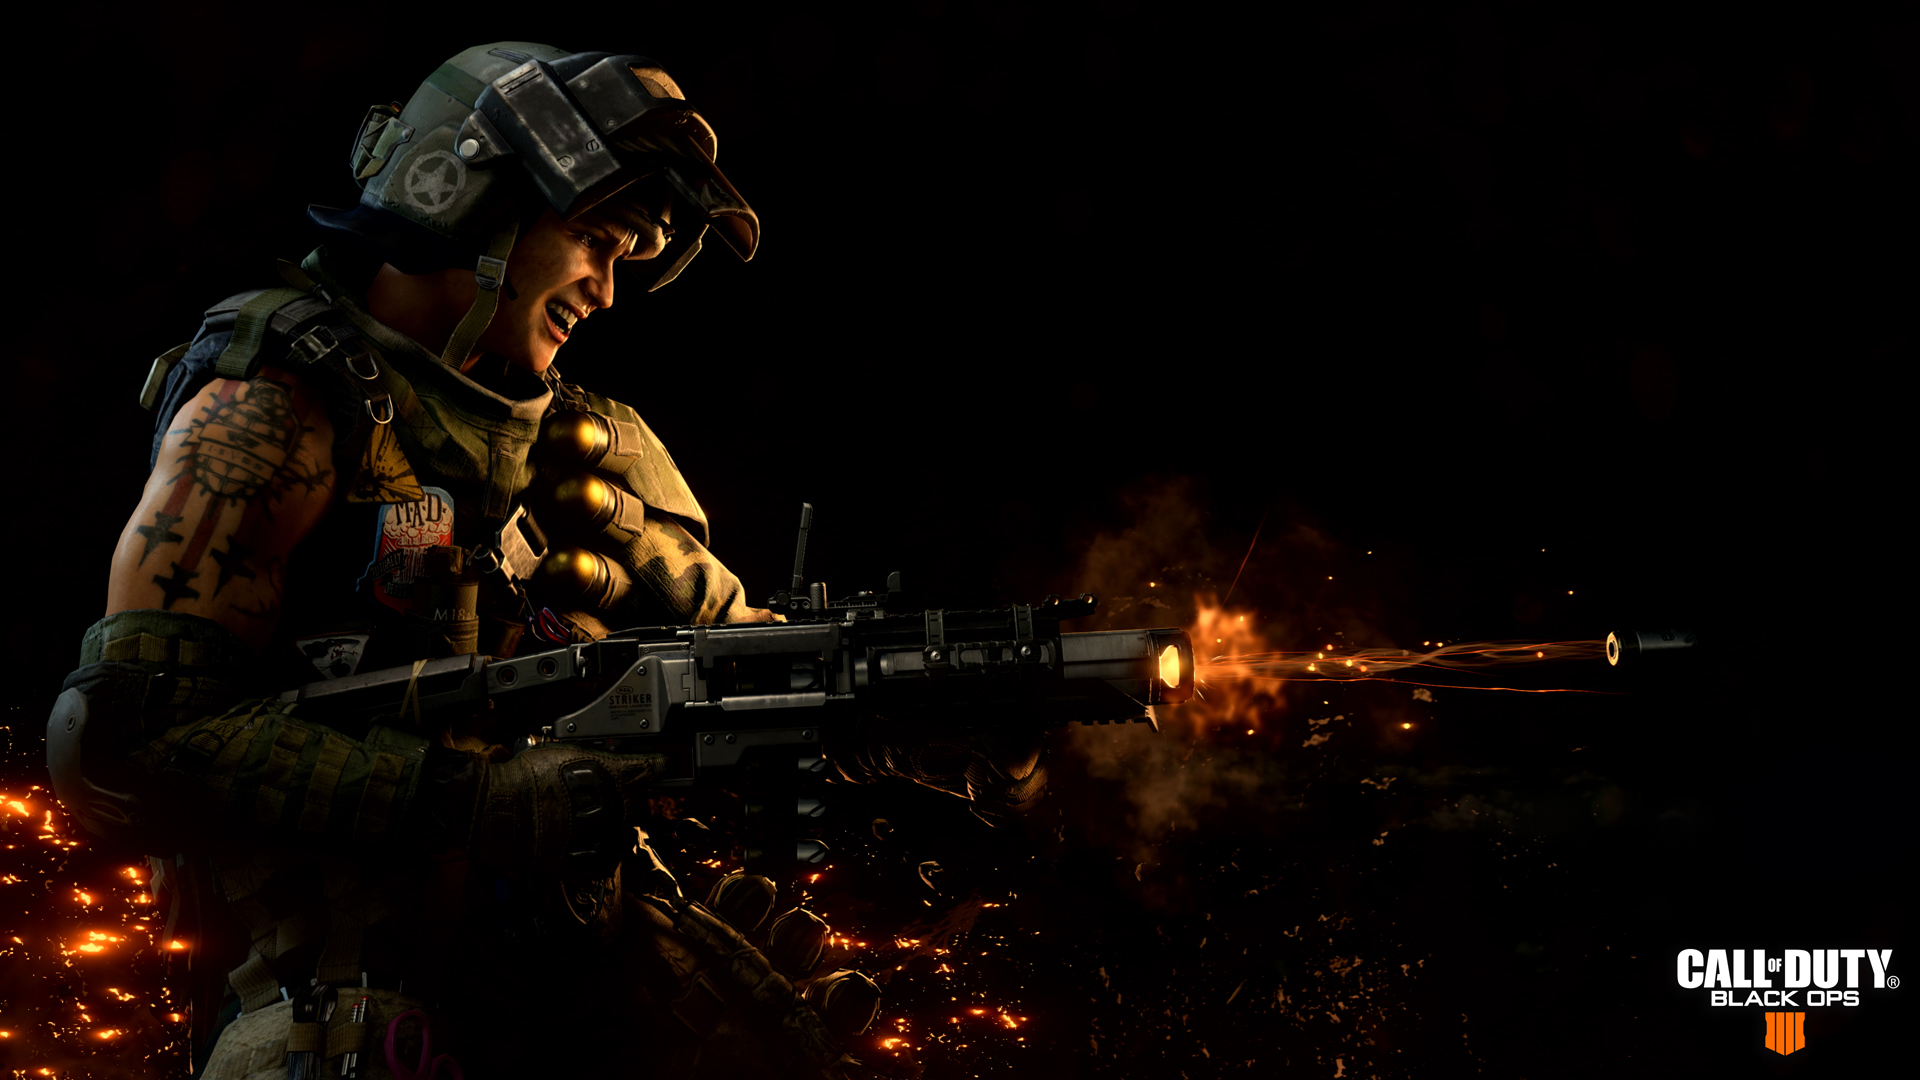 Call of Duty Black Ops 4 Screenshots #3 - Bild: Activision